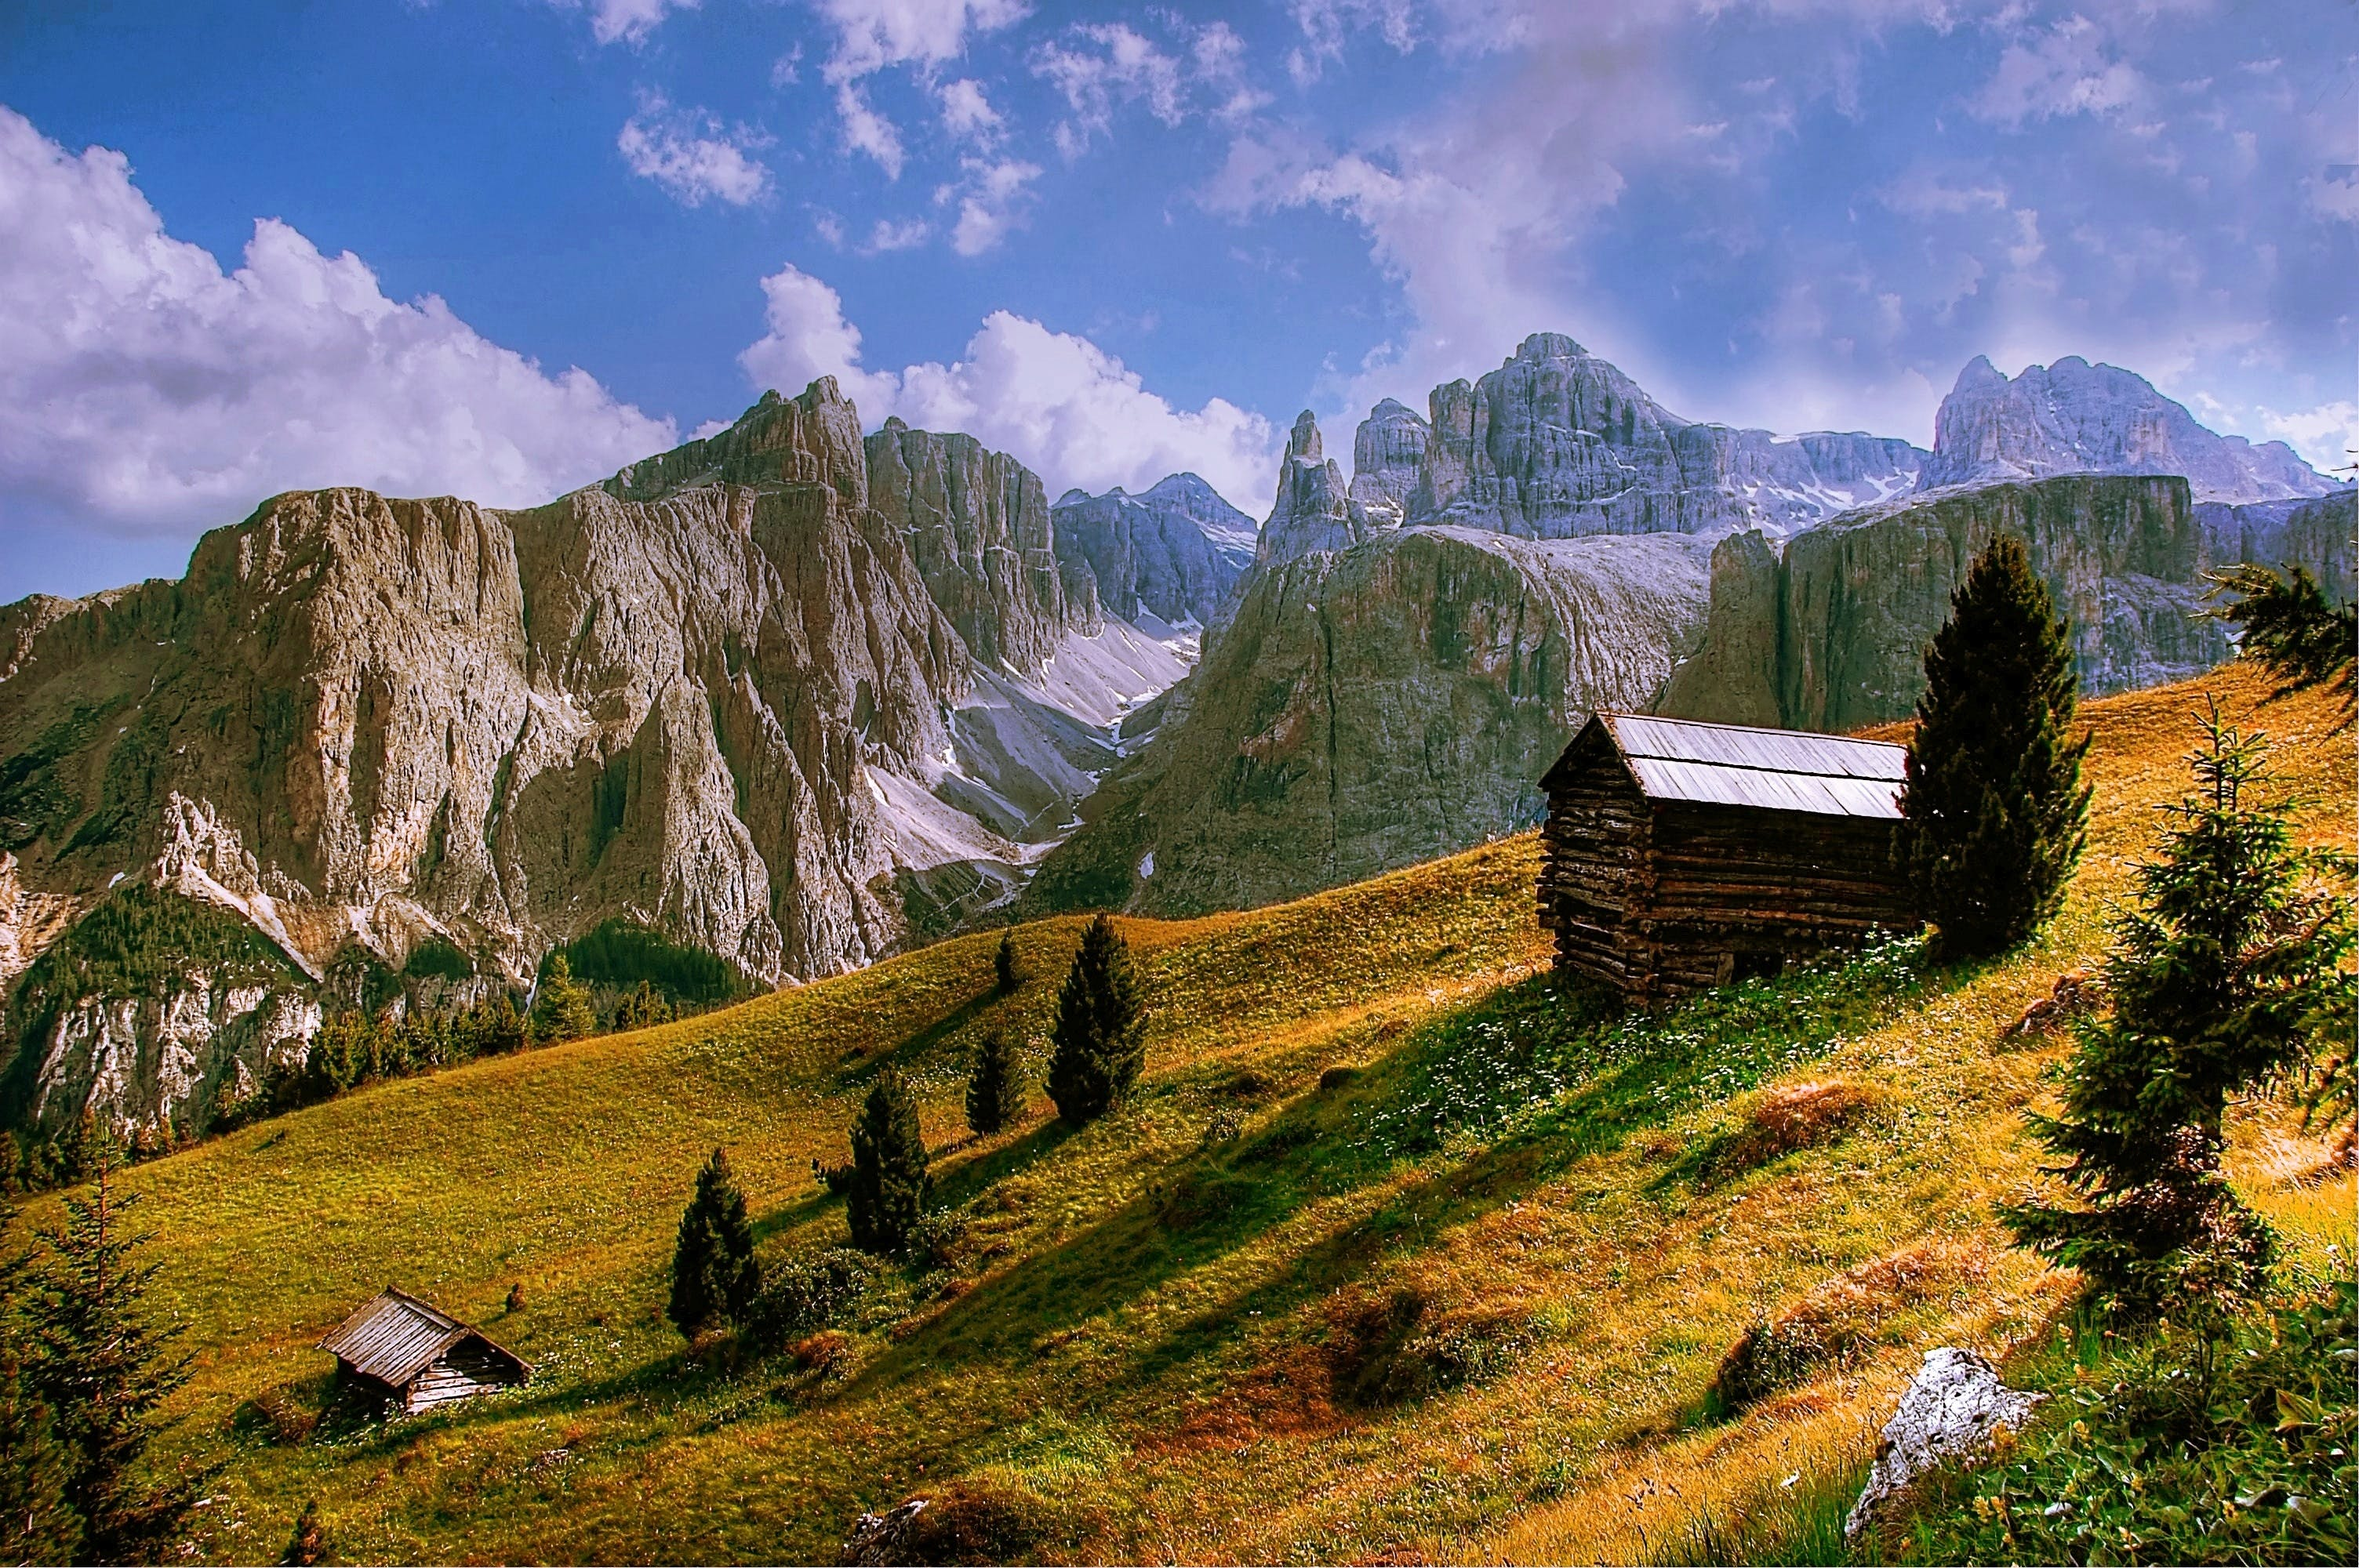 cabin, clouds, countryside